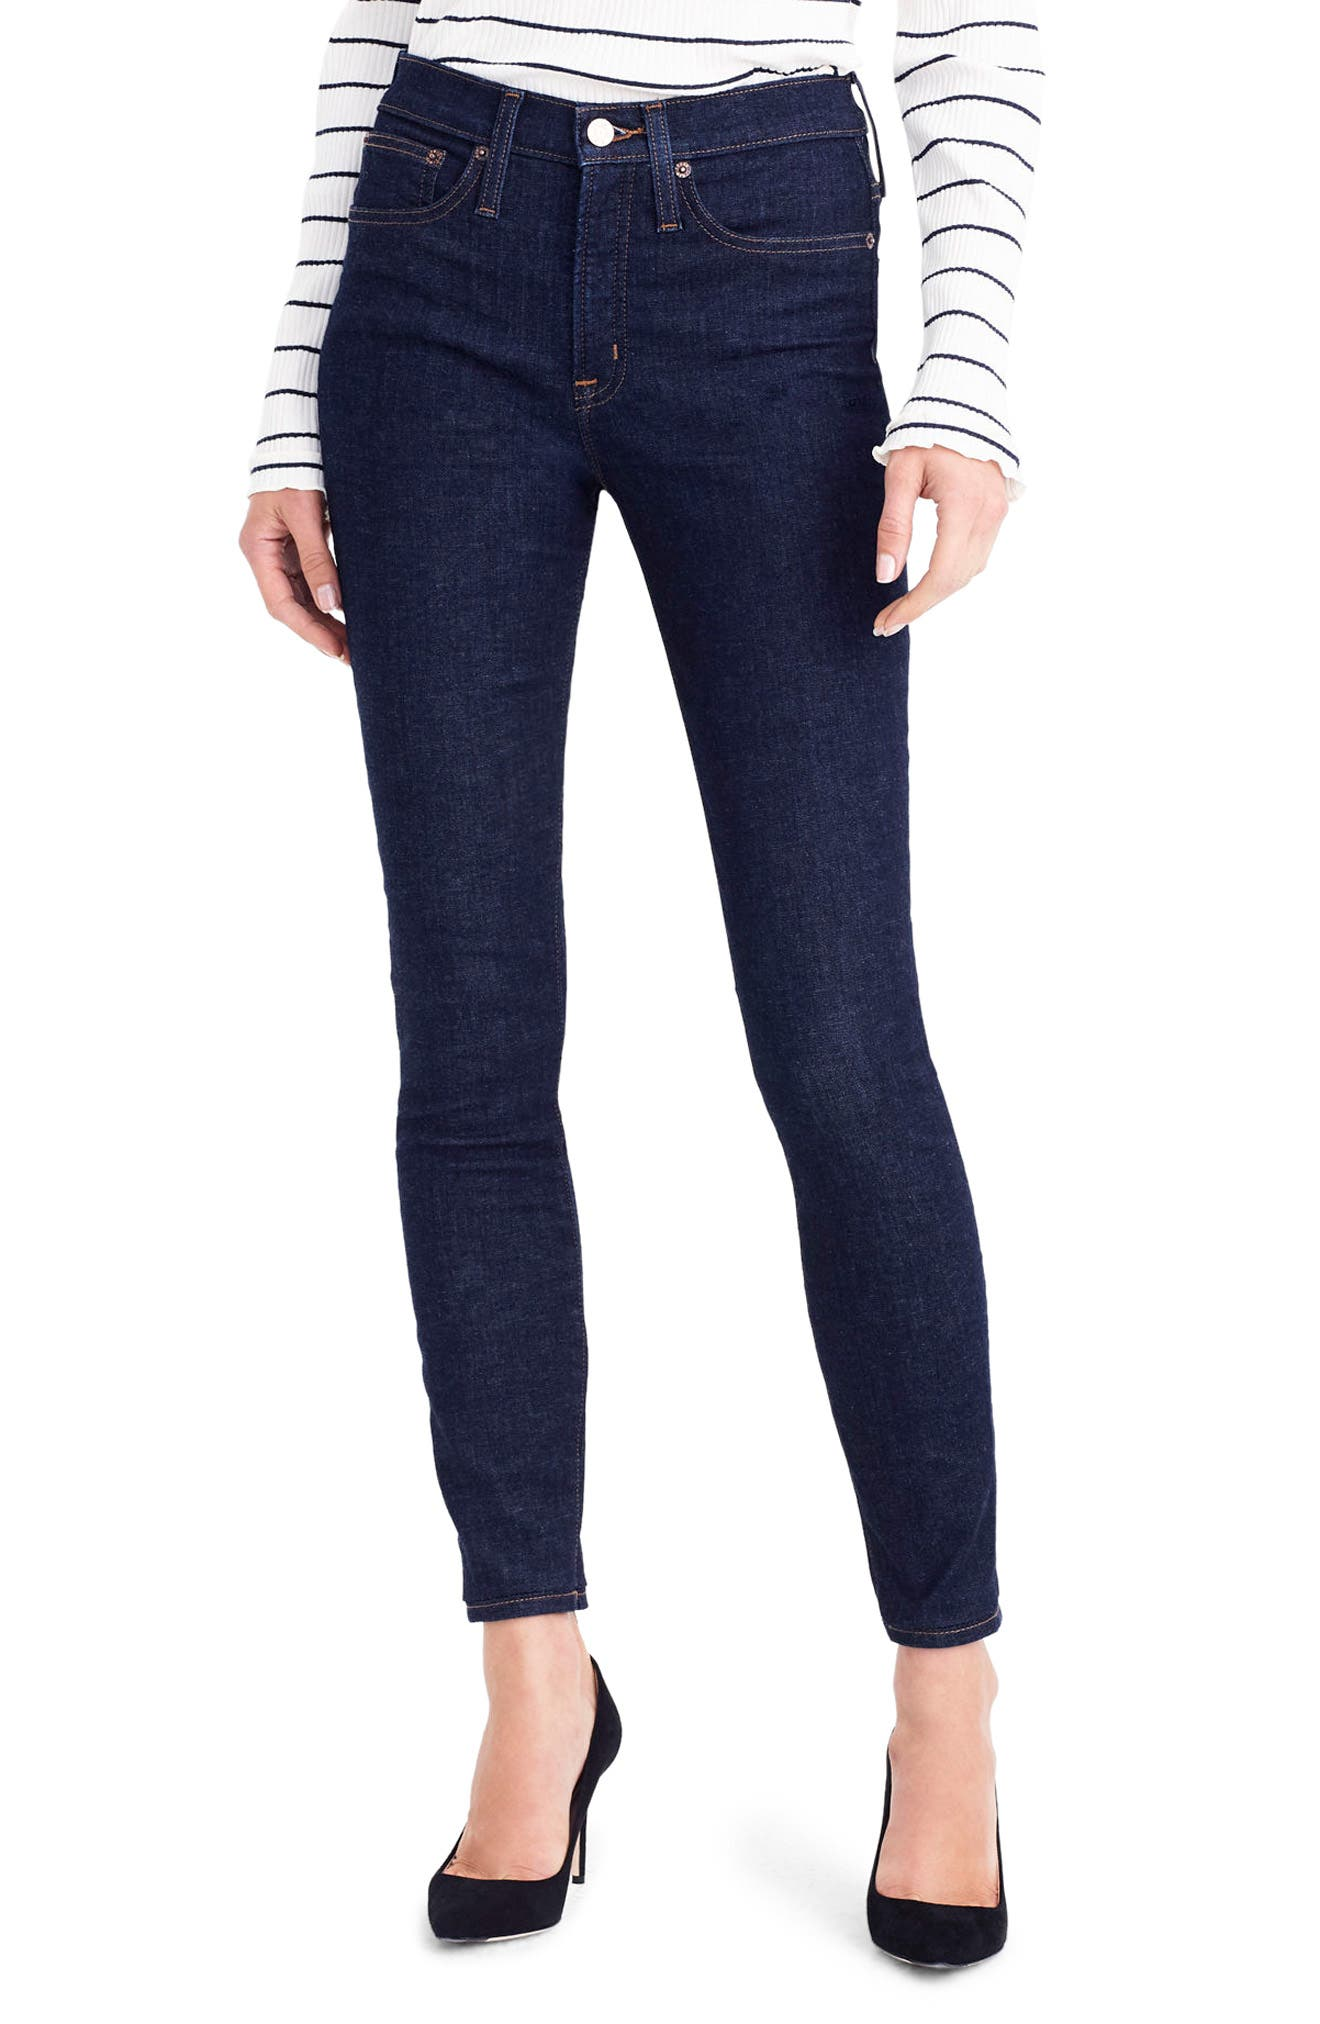 J.Crew Toothpick High Rise Jeans (Classic Rinse)